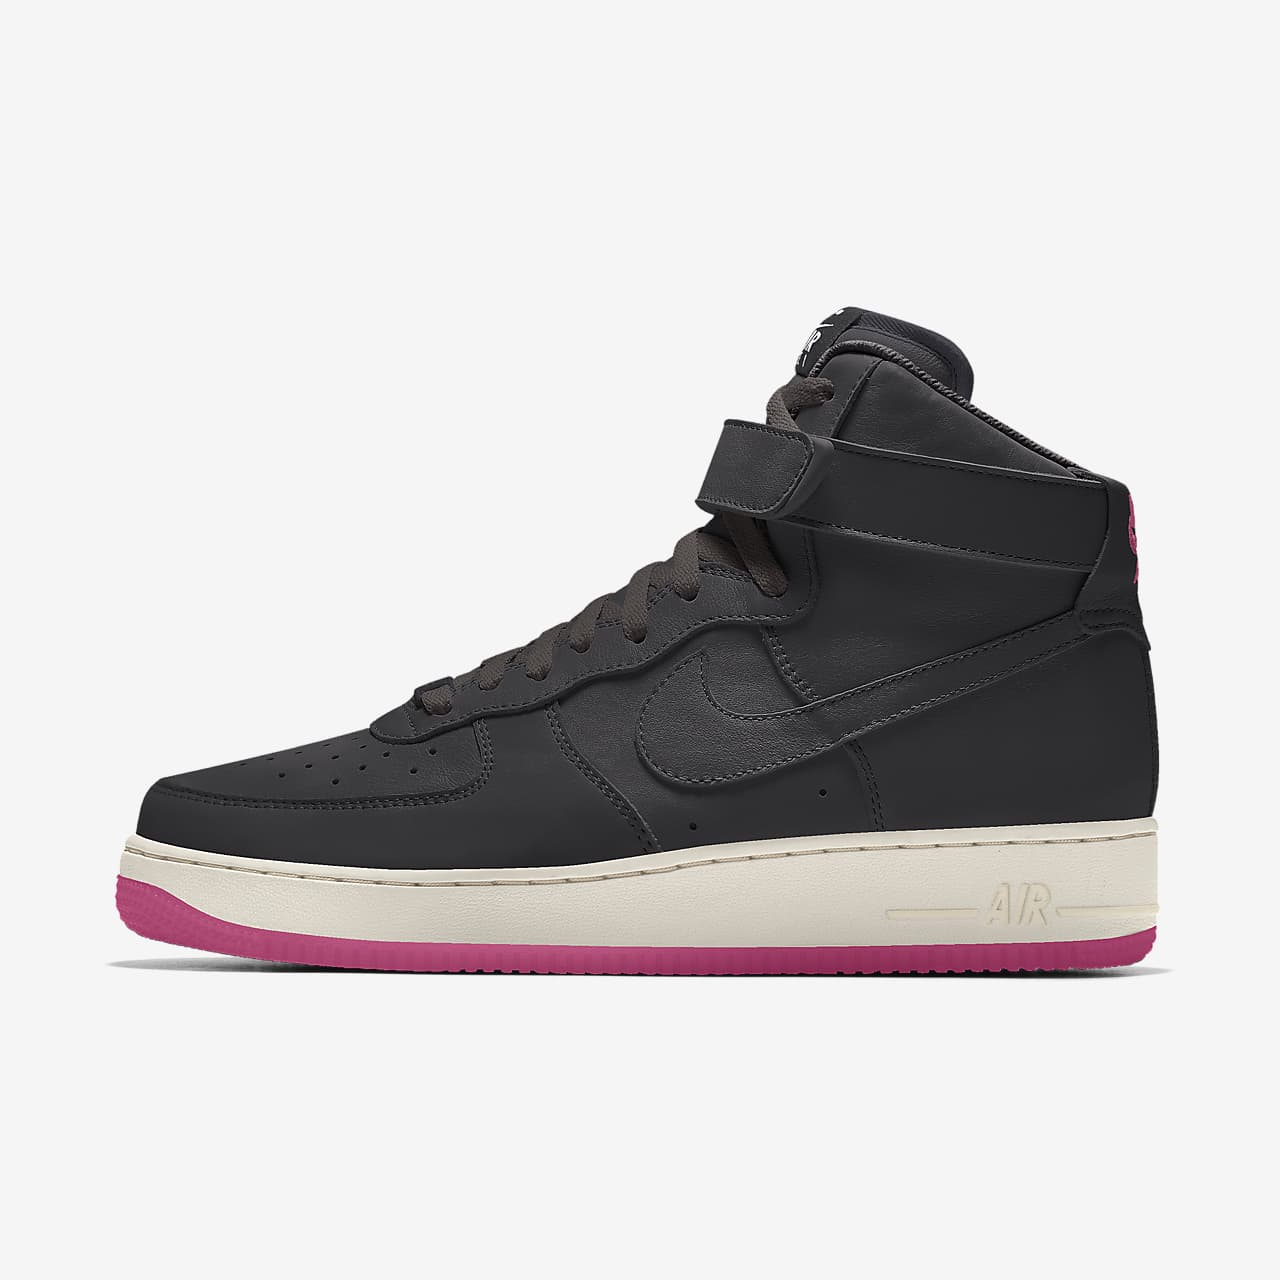 Nike Air Force 1 High By You Custom Women's Shoe